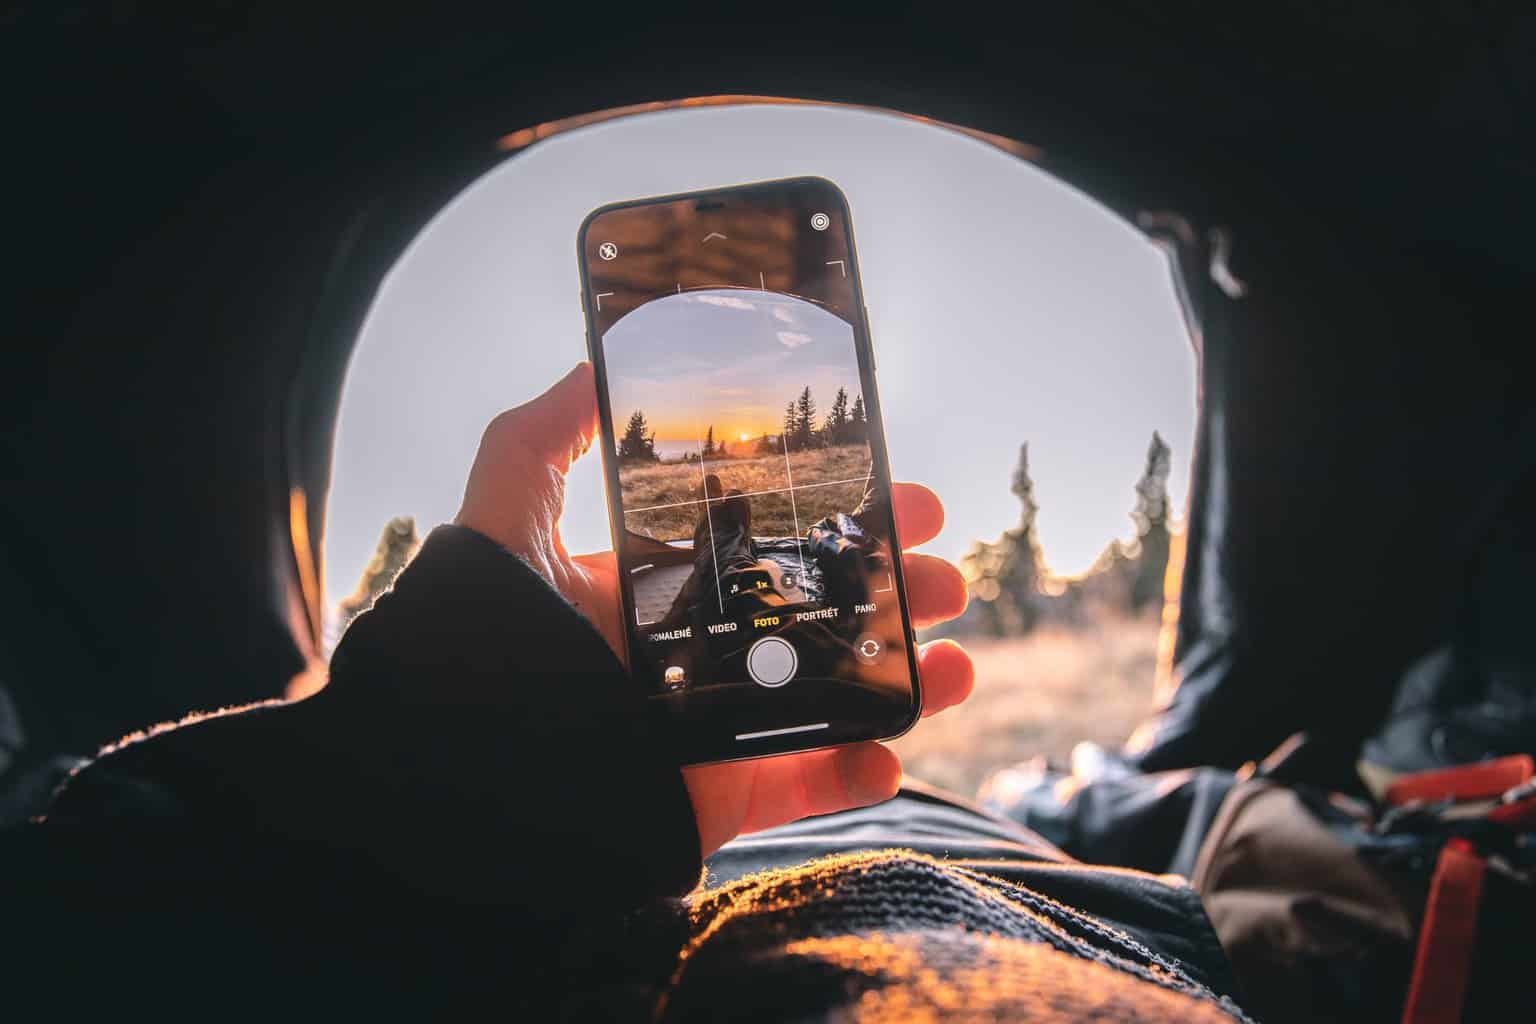 person capturing photo with an iPhone camera